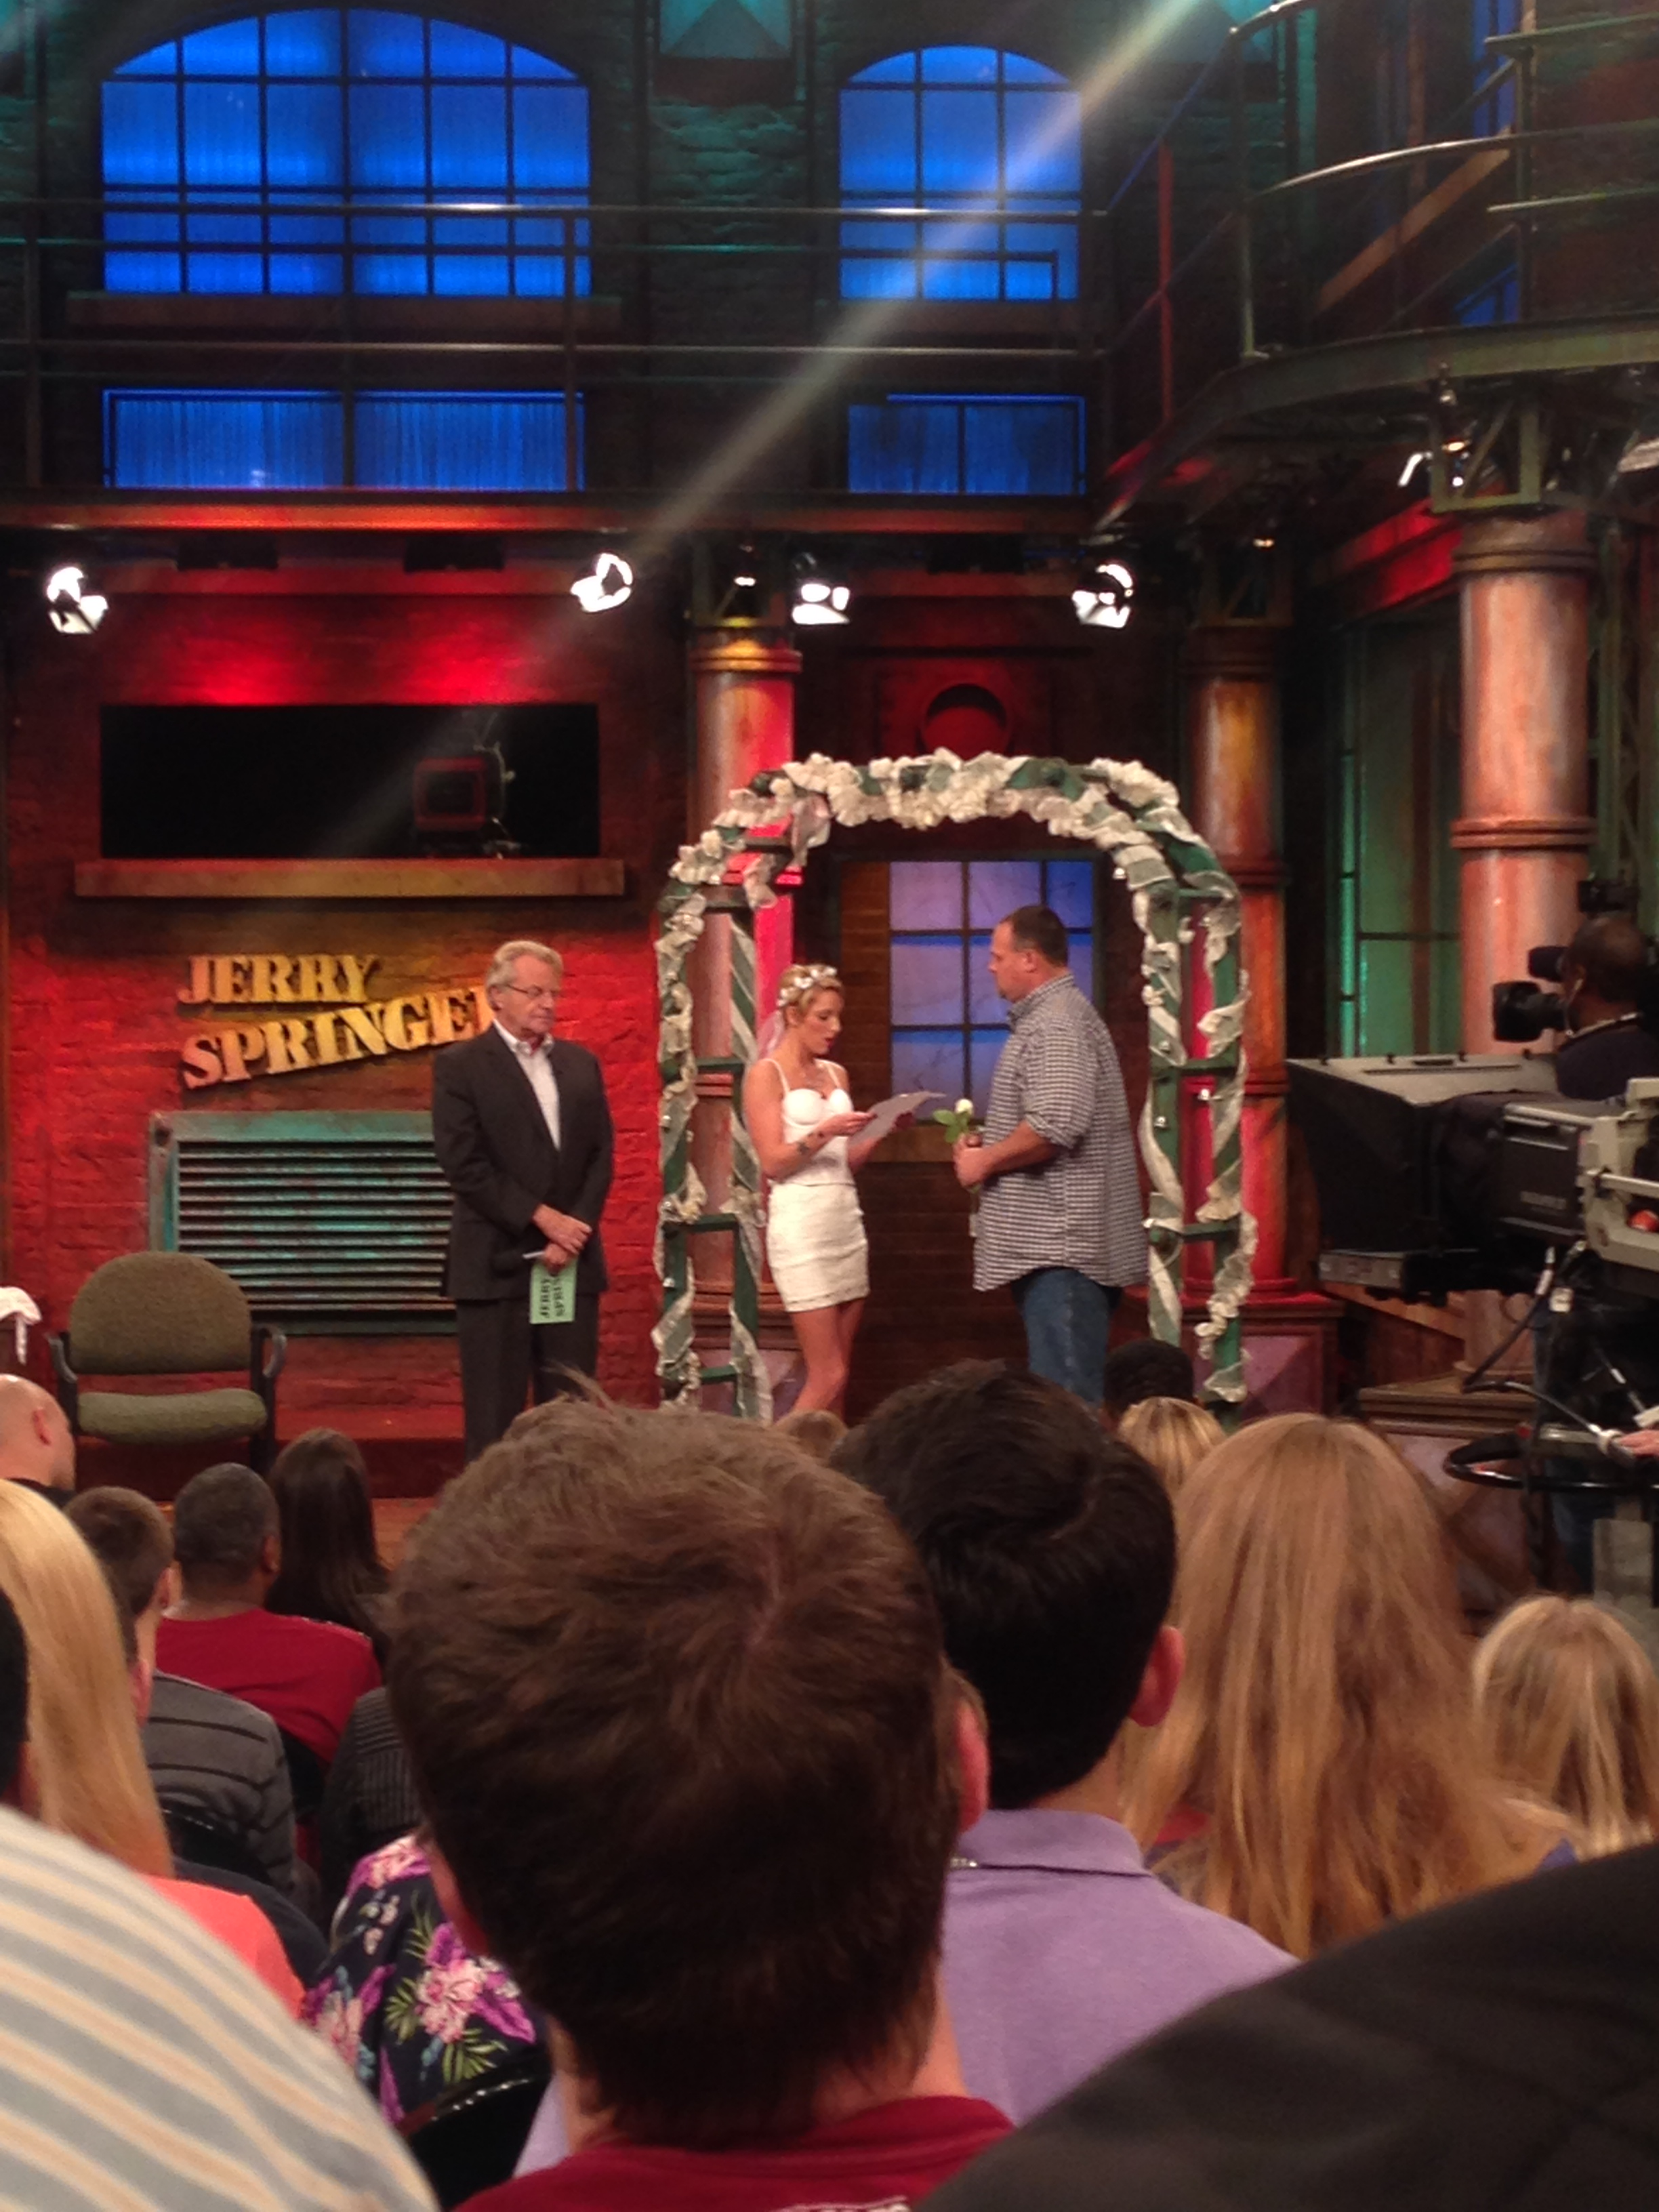 My Day at The Jerry Springer Show – Expanding your culture, one ...